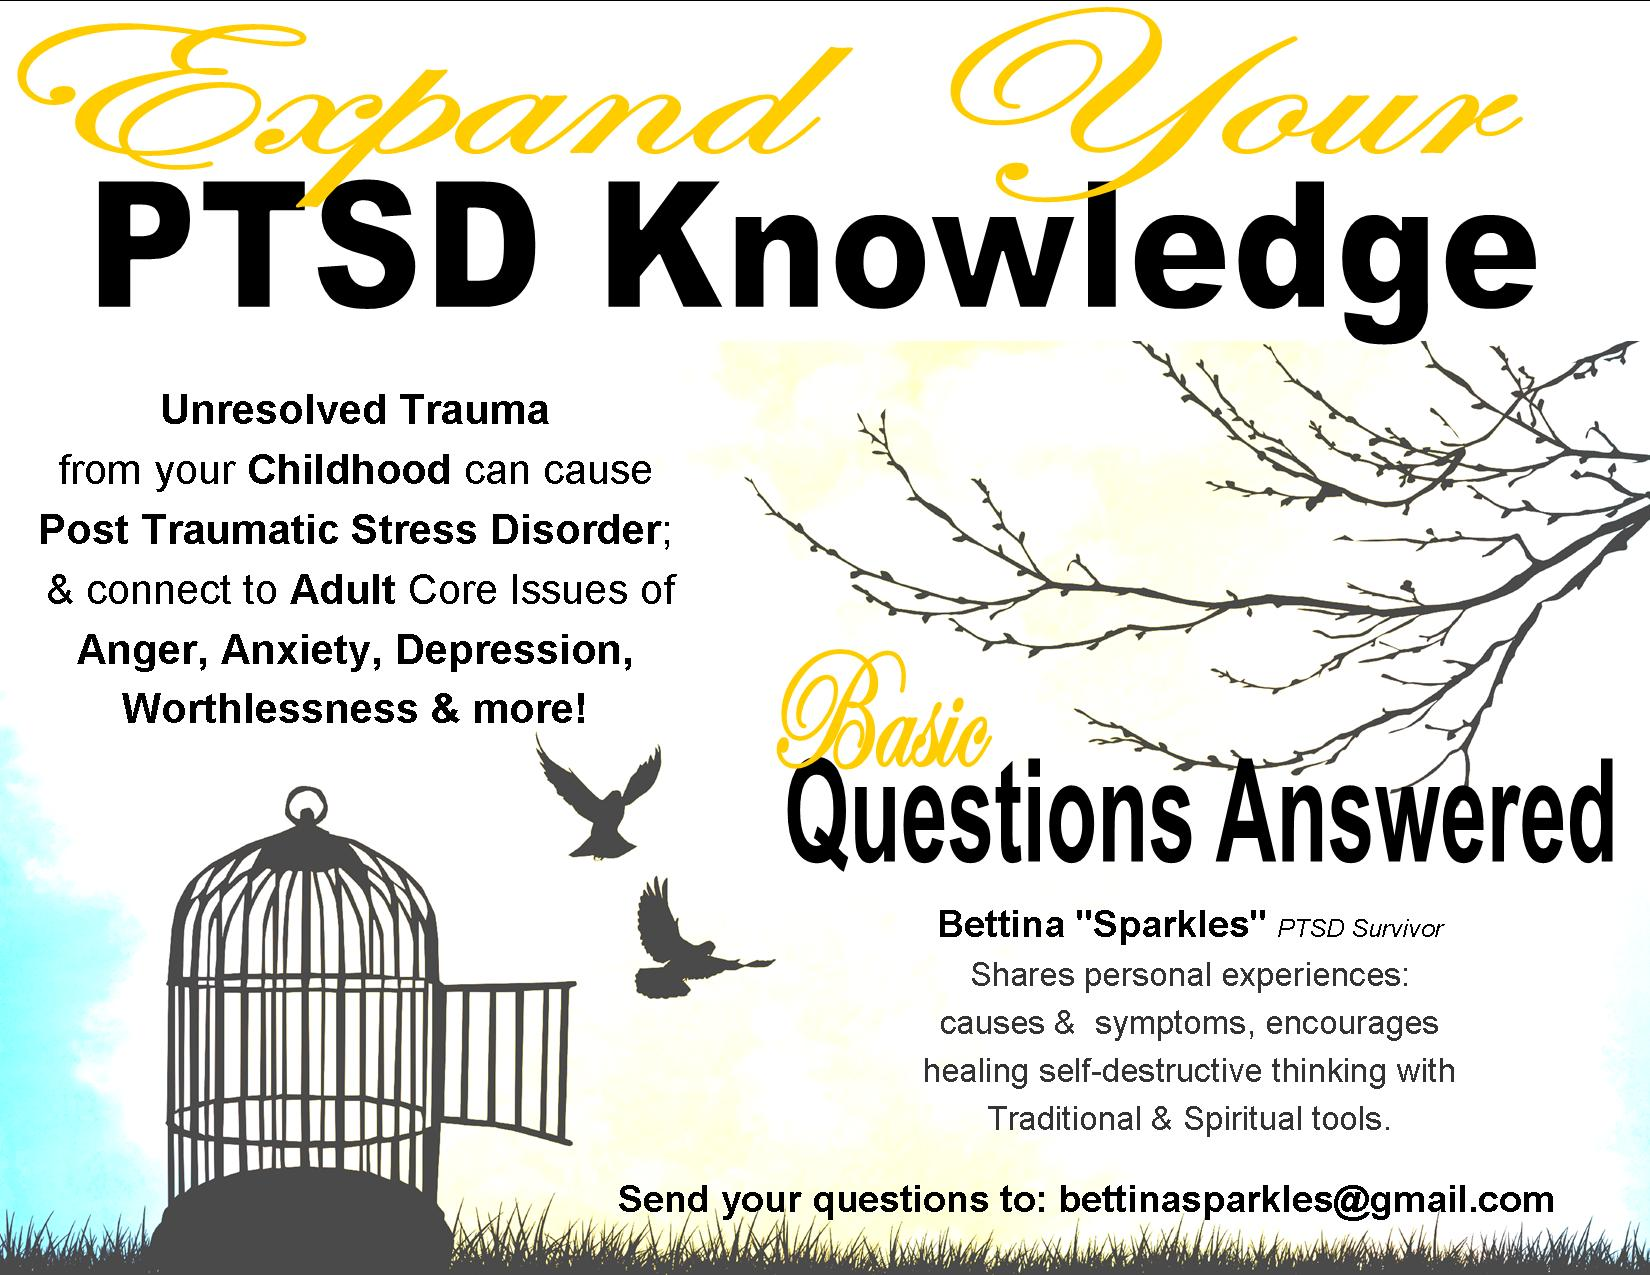 expand your PTSD knowledge 2.20.16